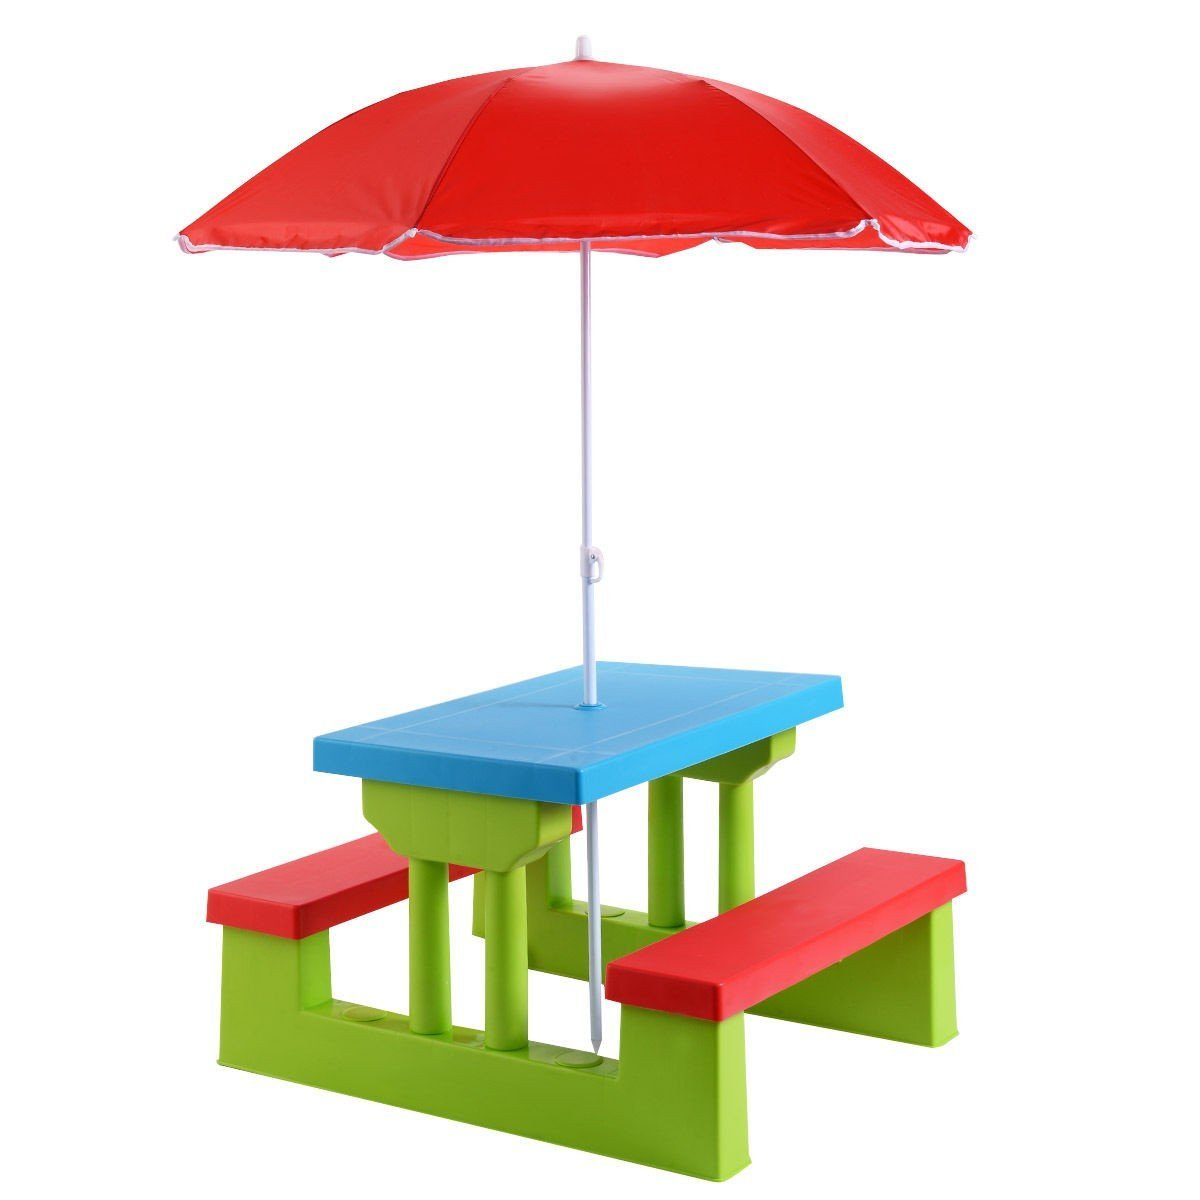 MD Group Picnic Table Kids Bench Outdoor Umbrella Children Playset Garden Folding Seat Furniture